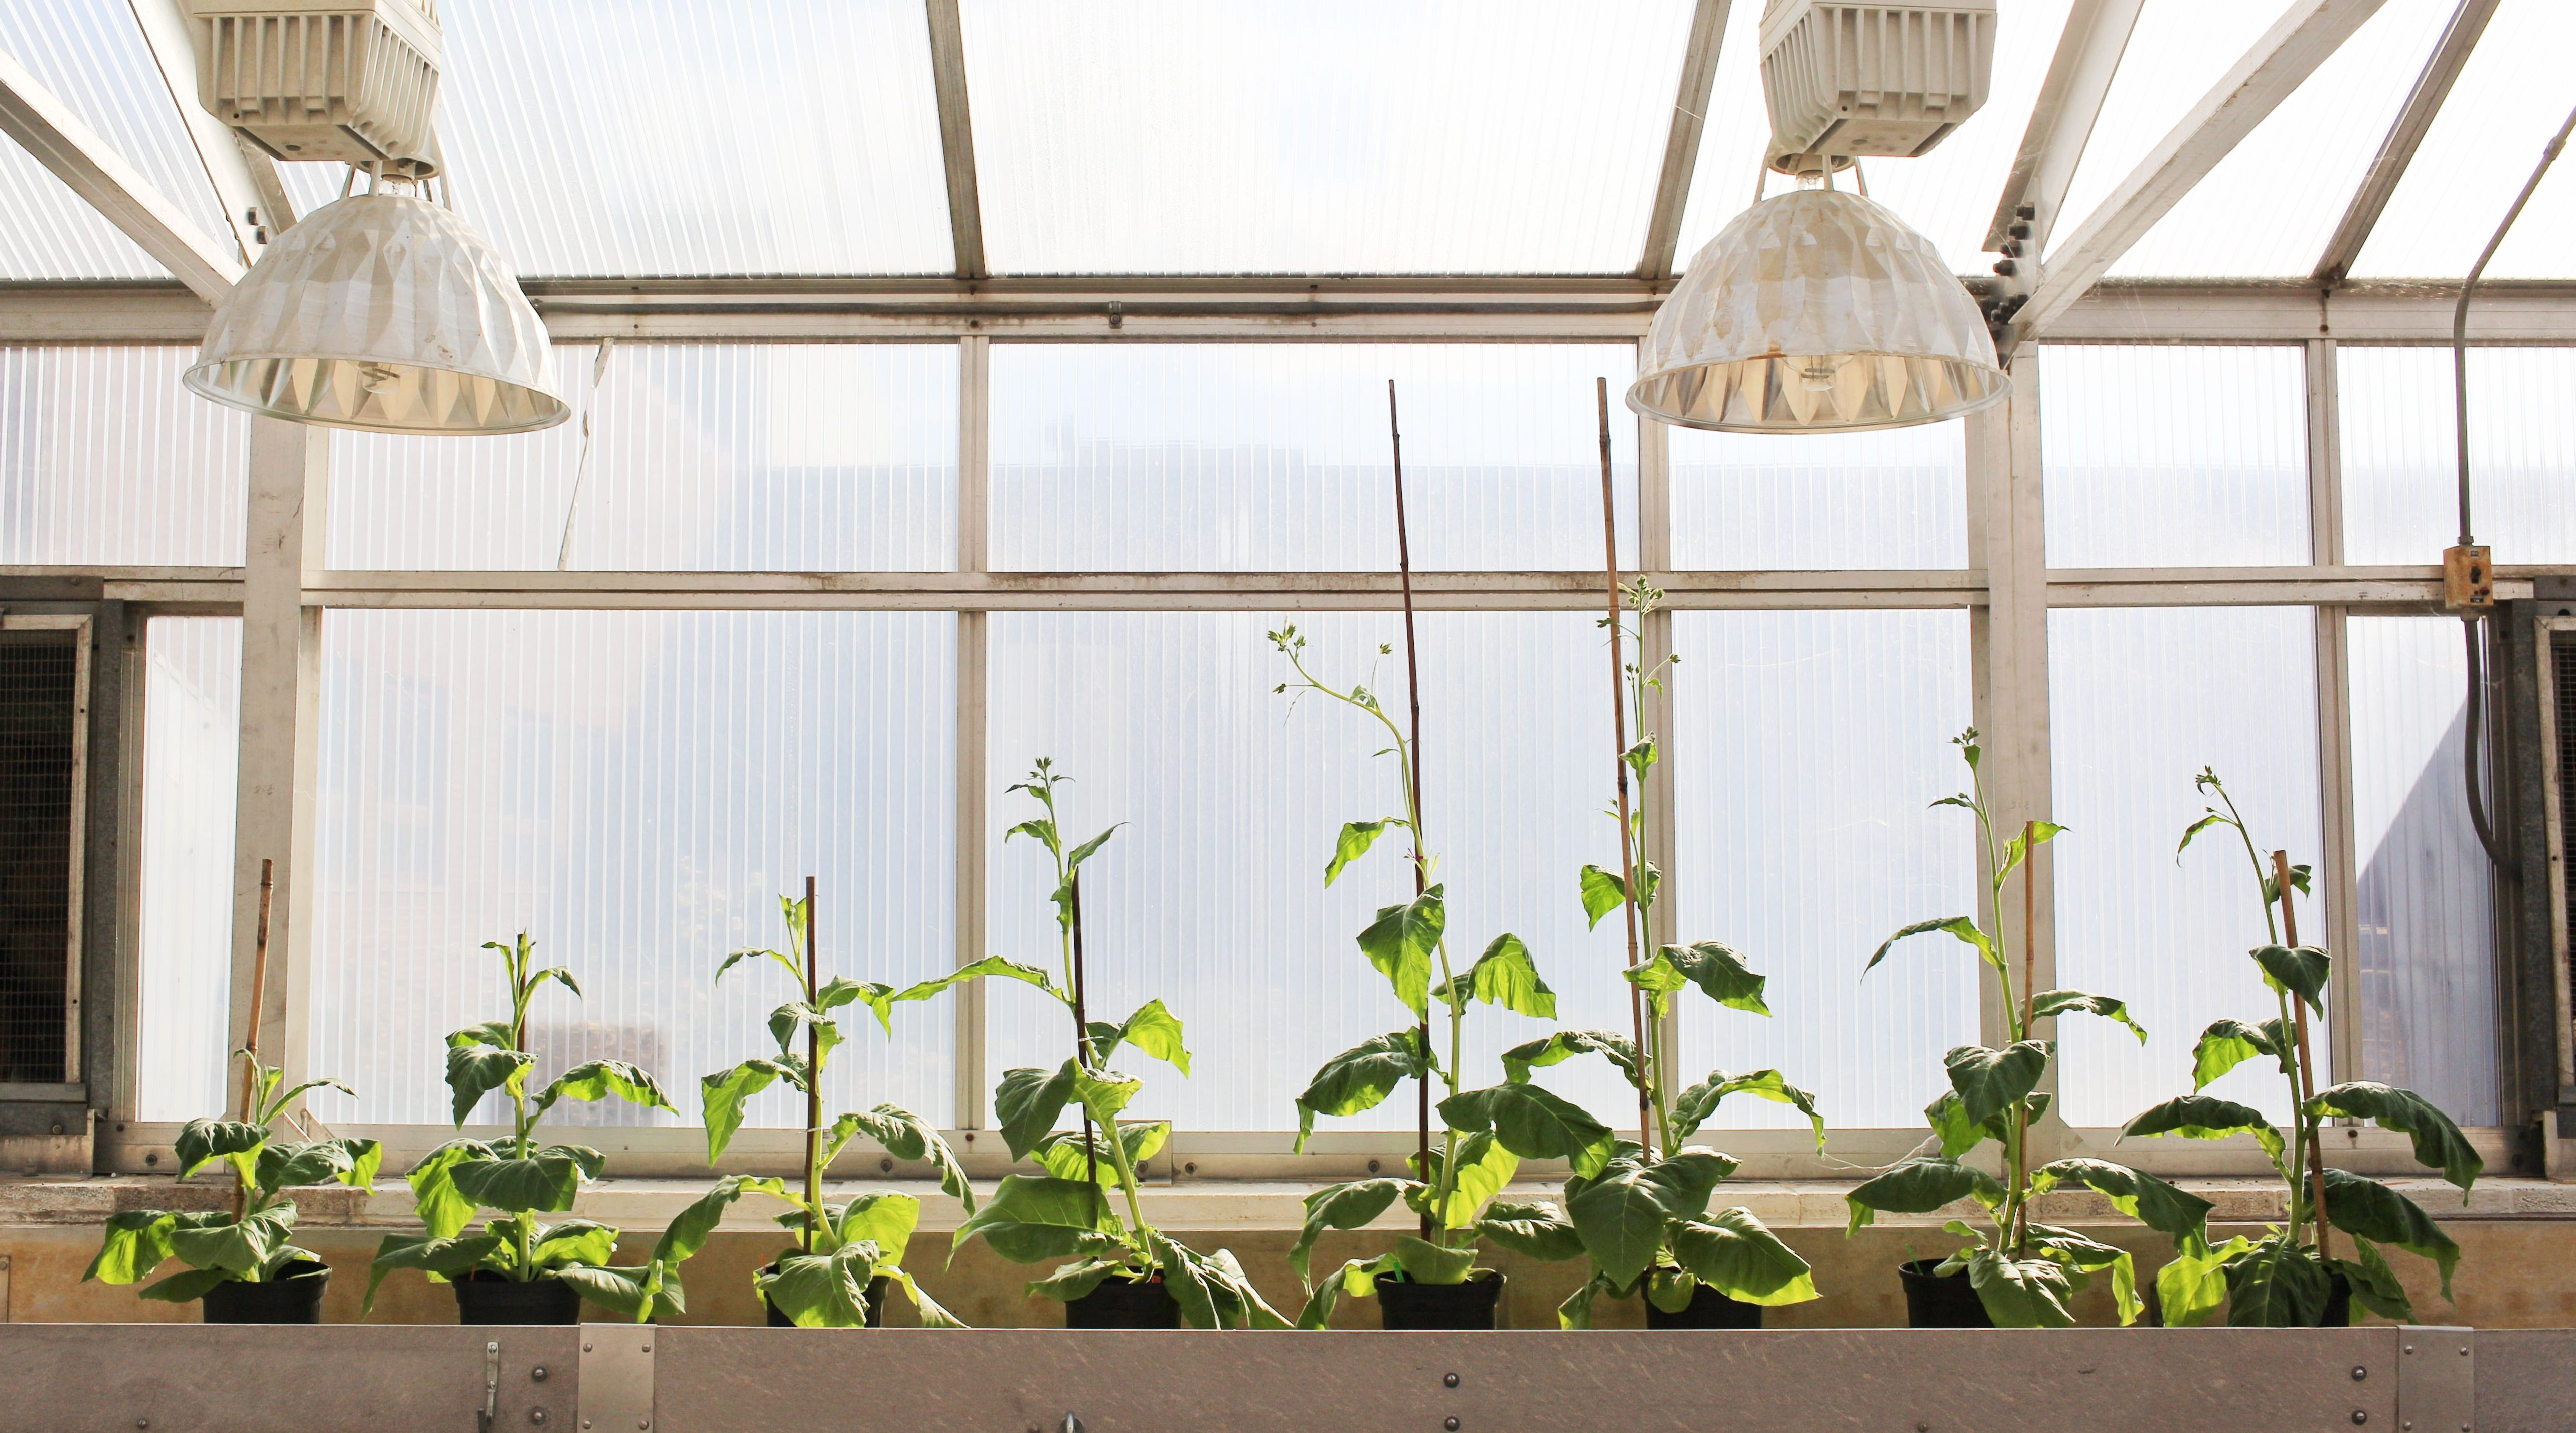 Scientists have found a way to help plants photosynthesize